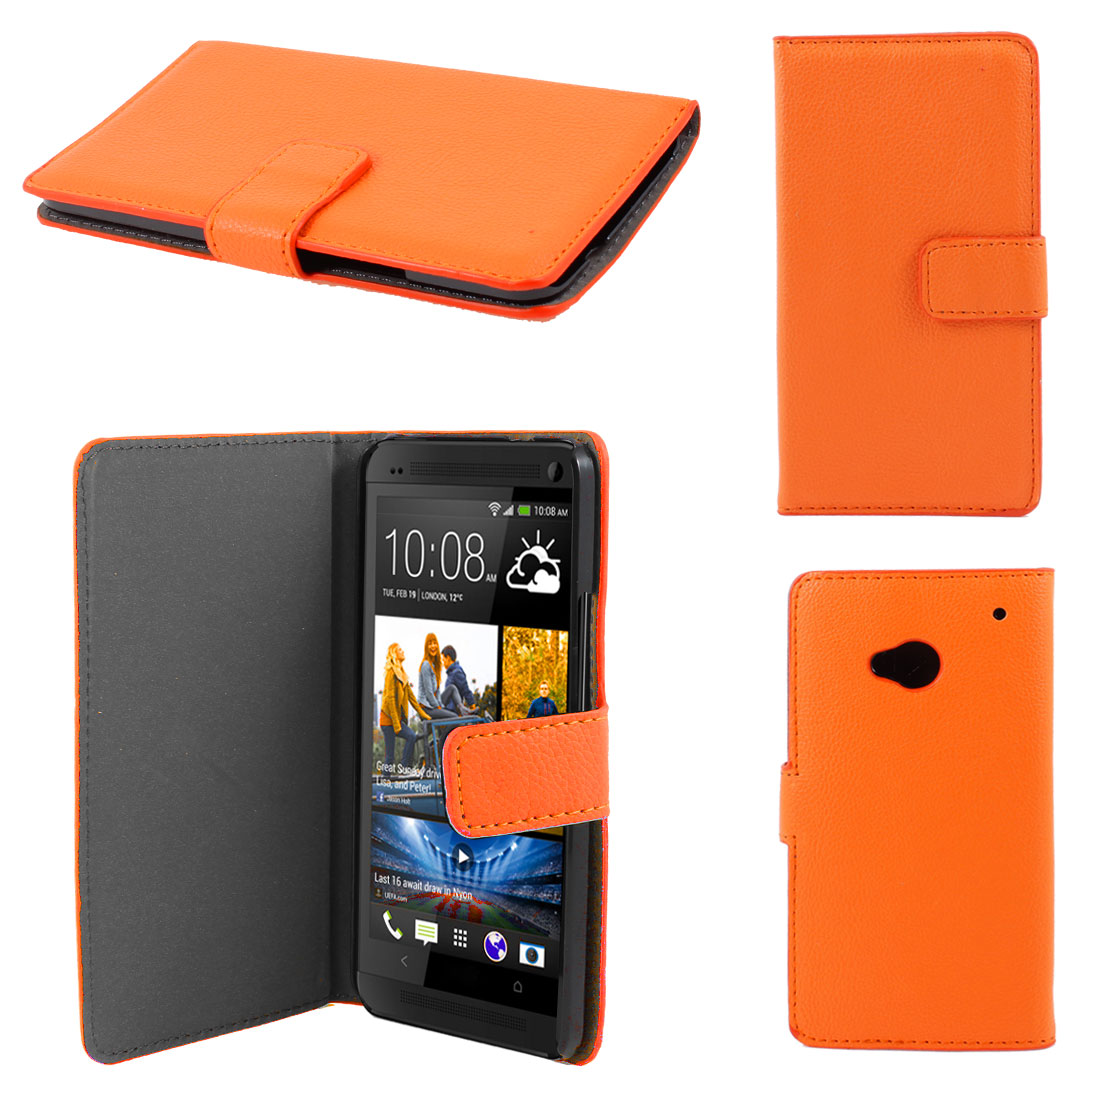 Orange Faux Leather Litchi Print Magnetic Flip Case Cover Pouch for HTC one M7